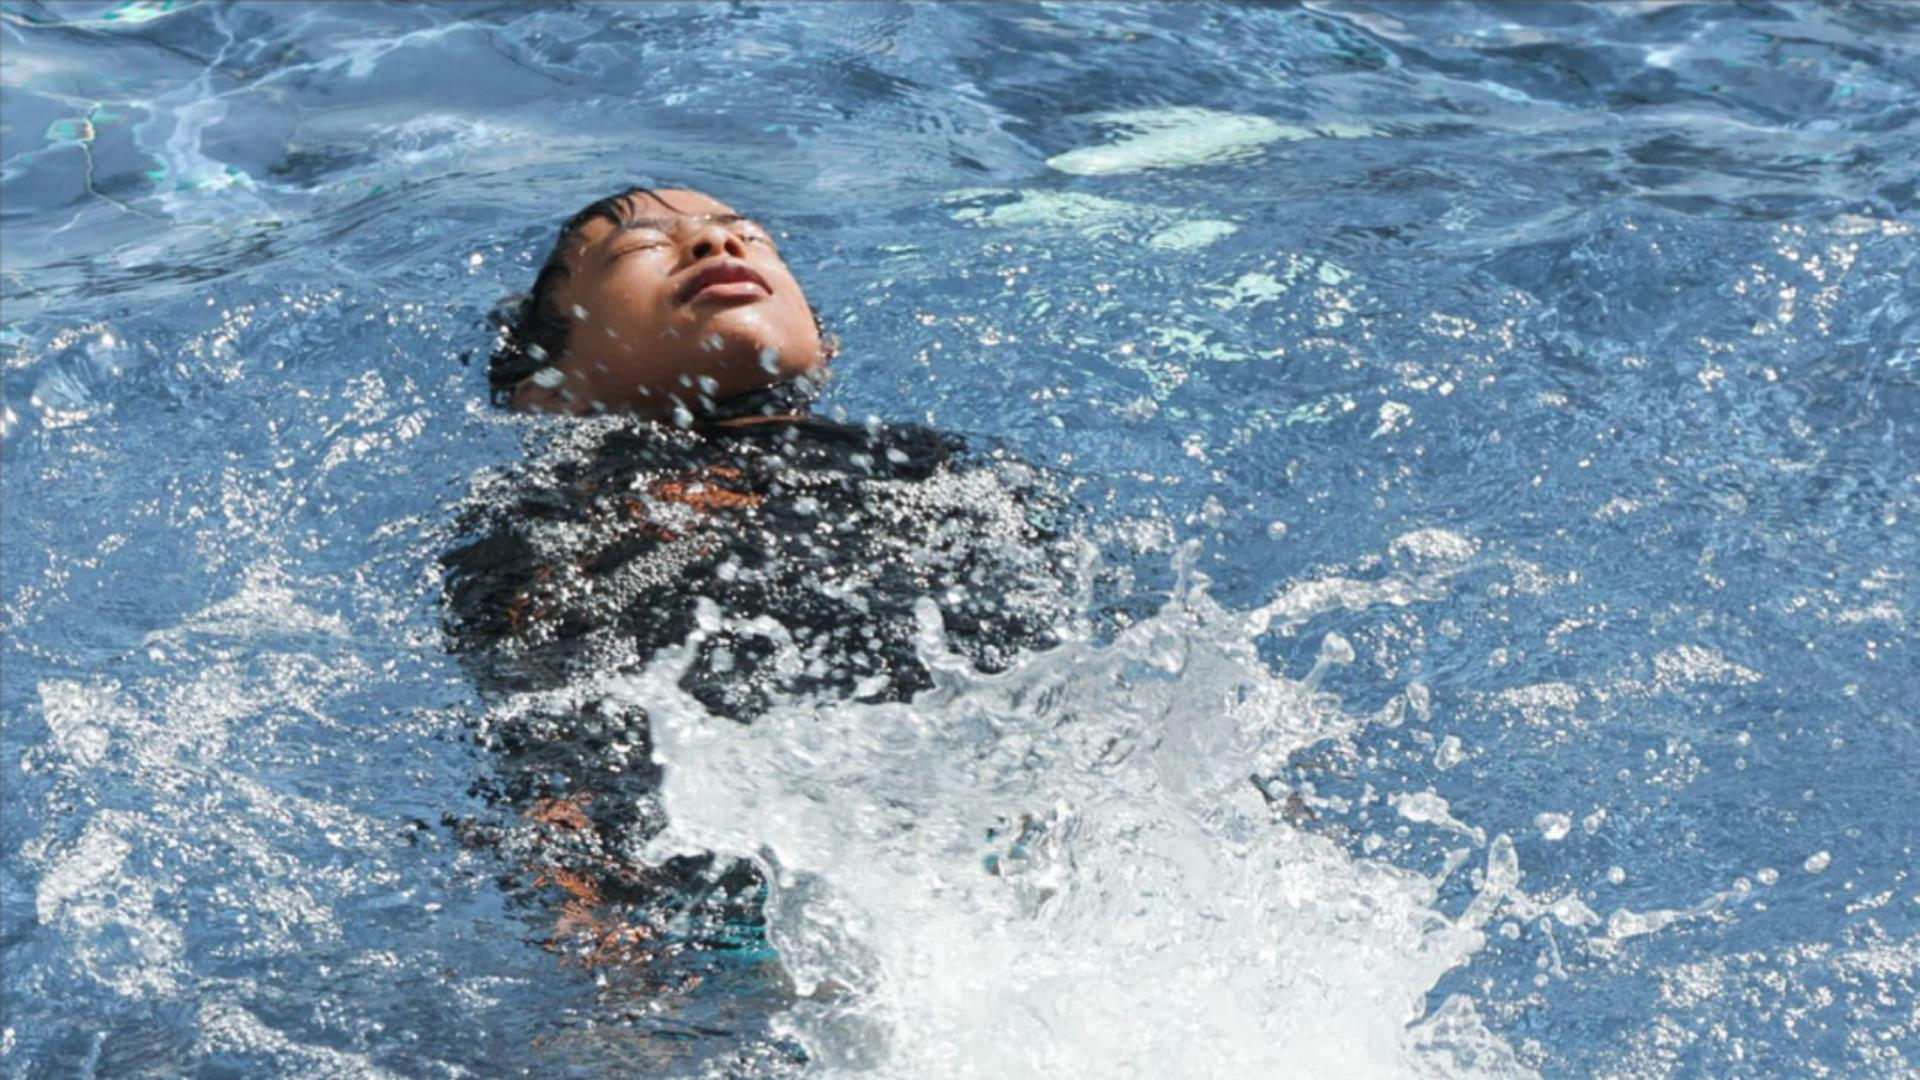 a little boy wearing a black shirt is swimming on his back